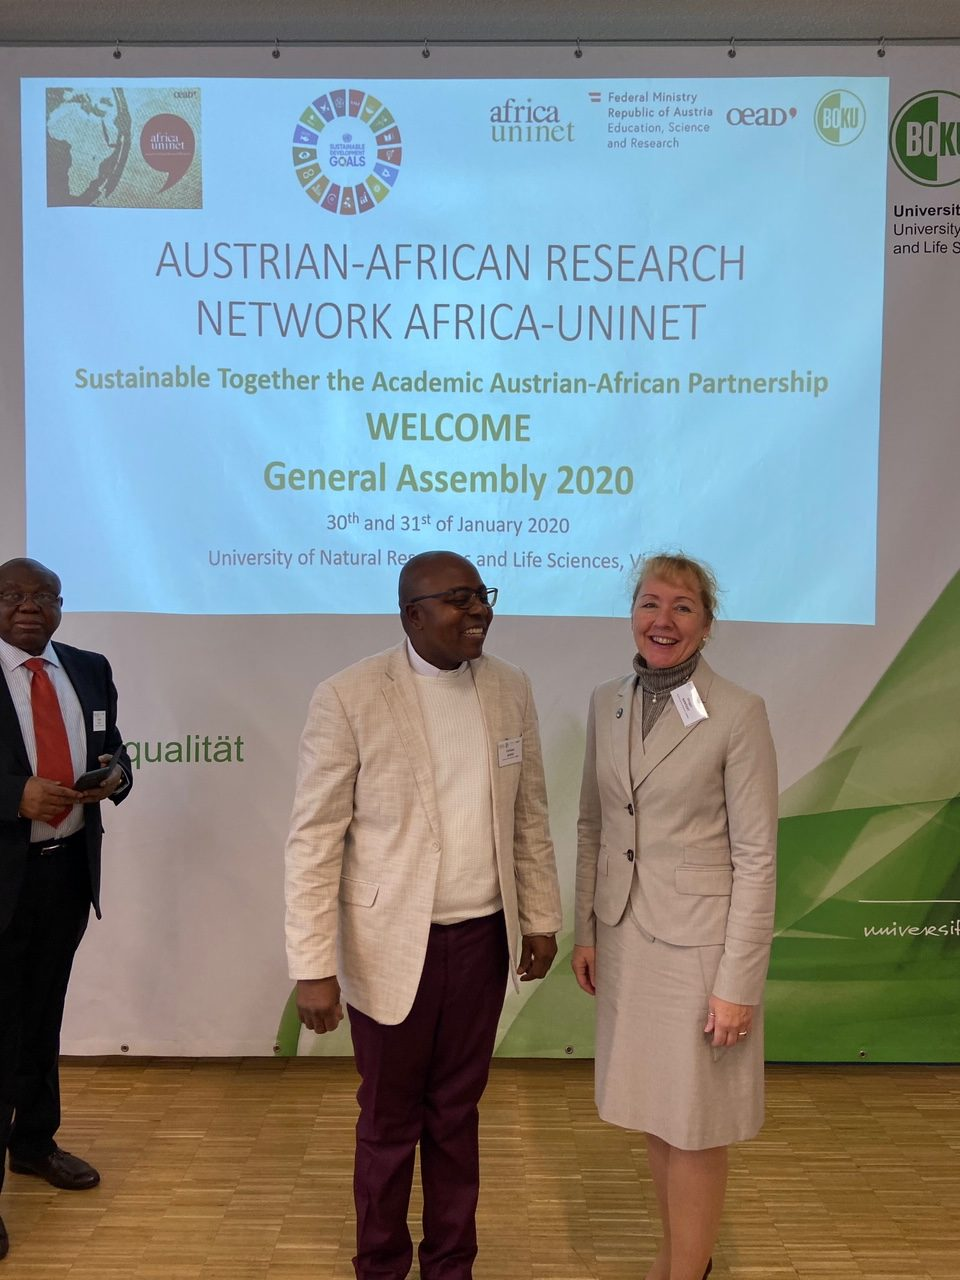 The VC of GO has been  elected President of the Nigerian universities belonging to the biggest Austrian-African universities network (Austrian-Africa Uninet) 4